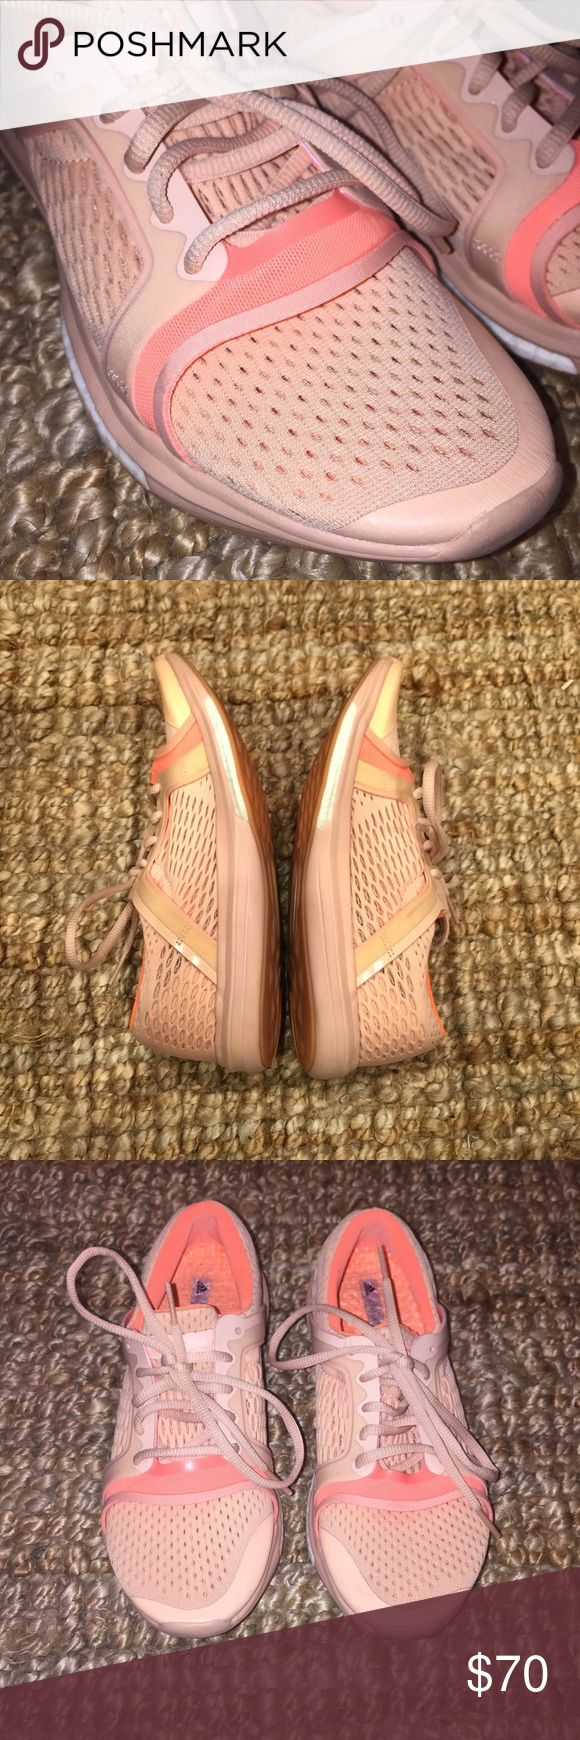 Stella McCartney Mesh shoes Worn only twice! These are too small for me! Size 7, but fit like a 6.5 or a small 7? Mesh. A nude/pink color. So comfy. Stella McCartney Shoes Sneakers